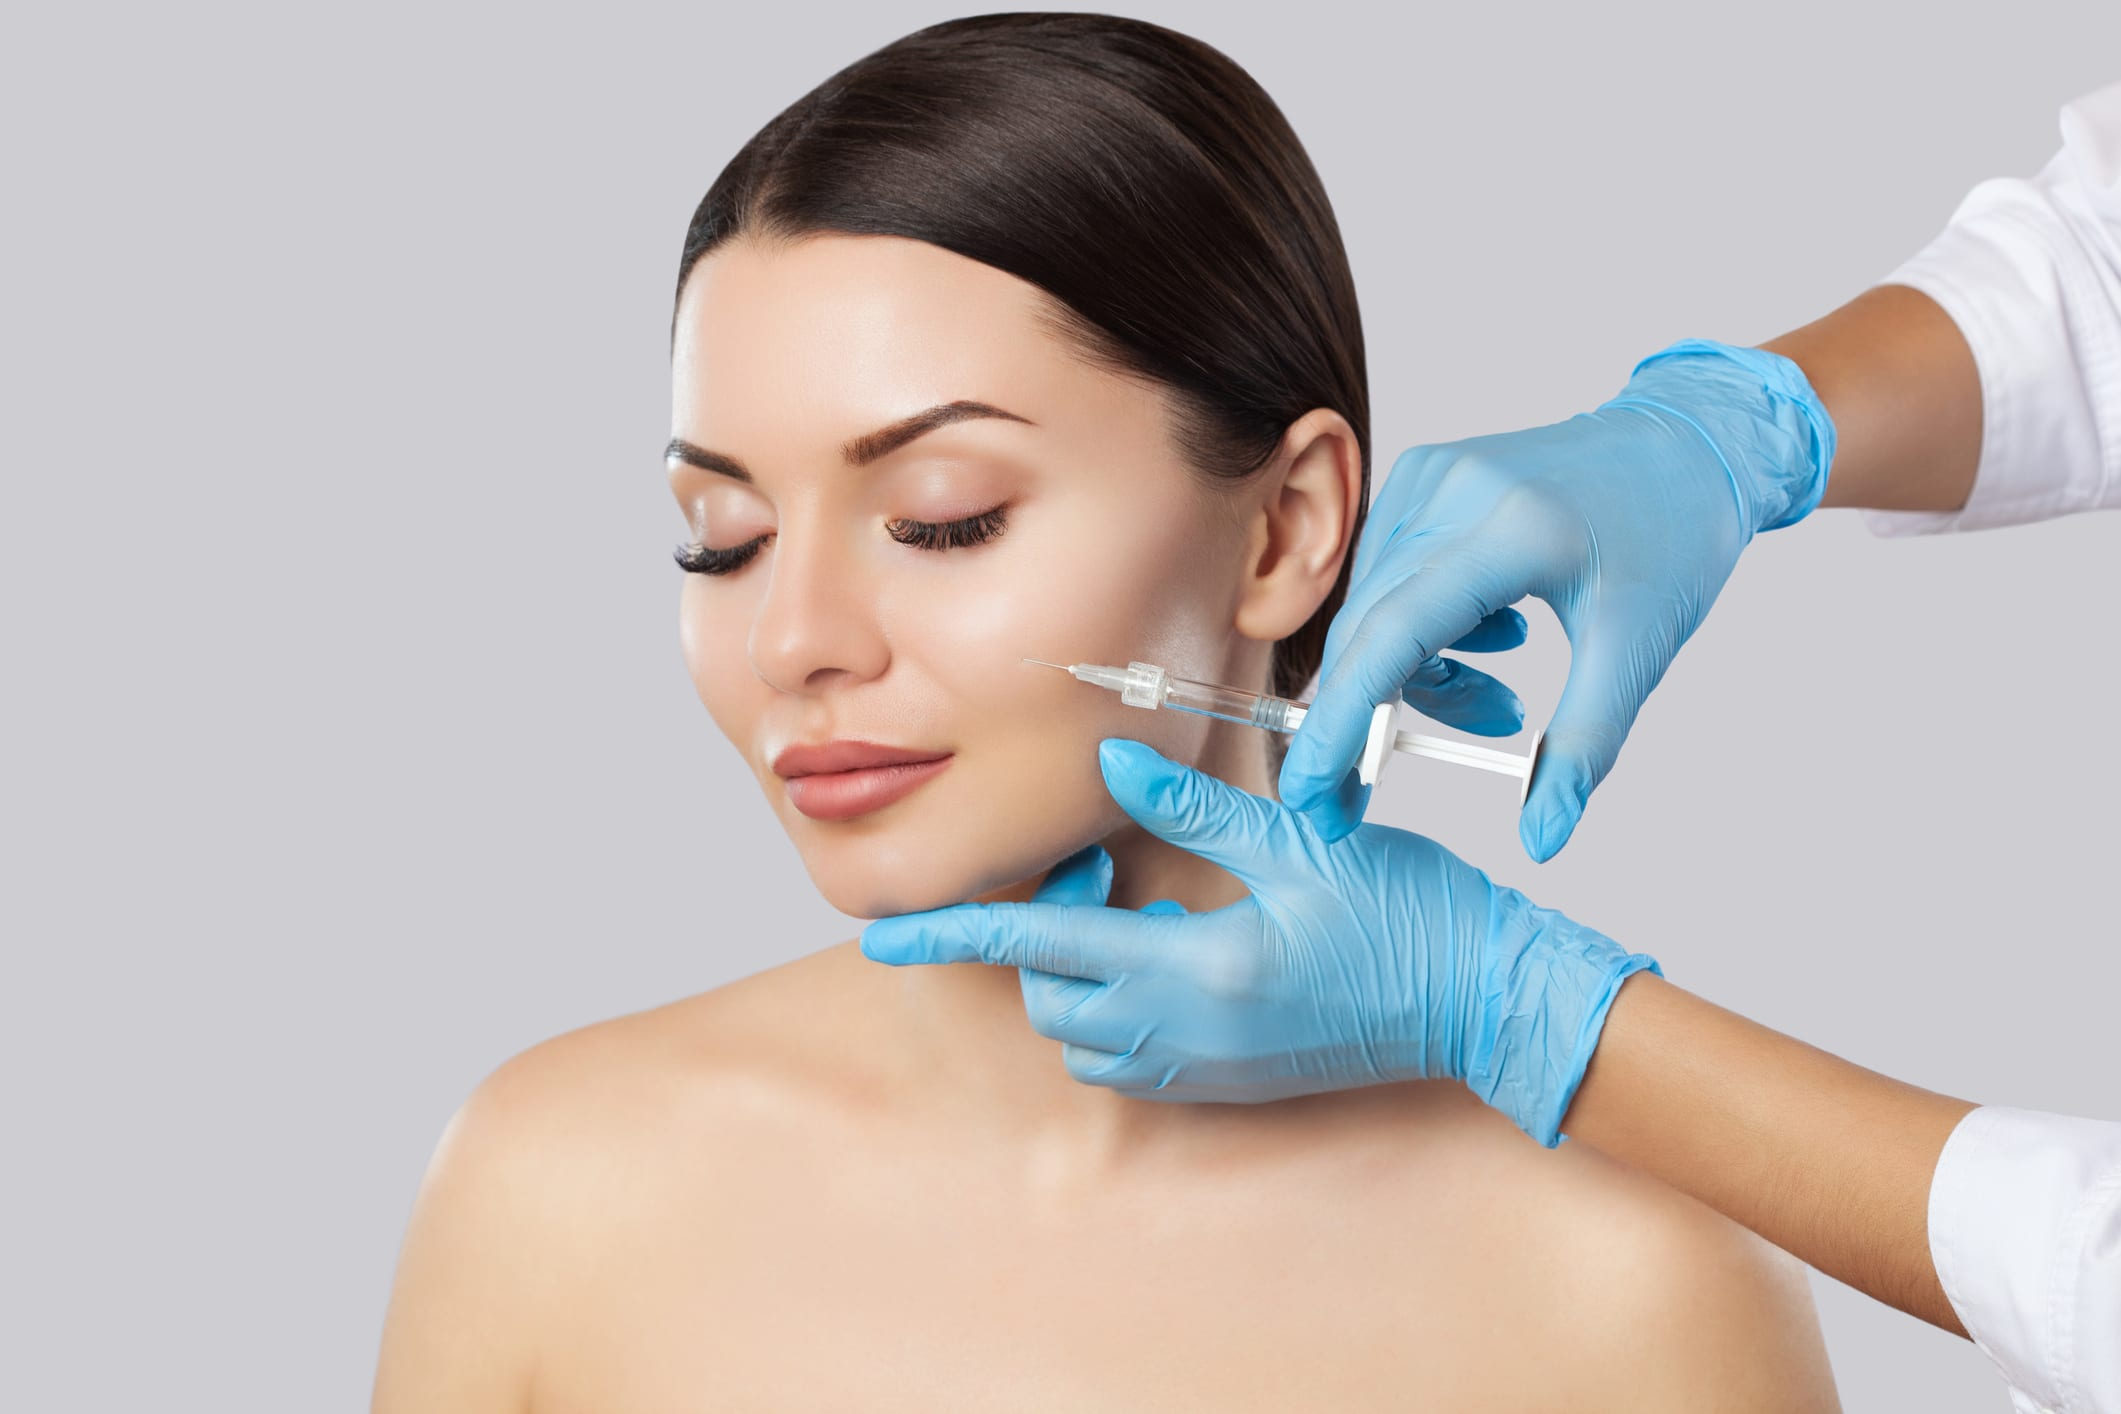 Injecting fillers